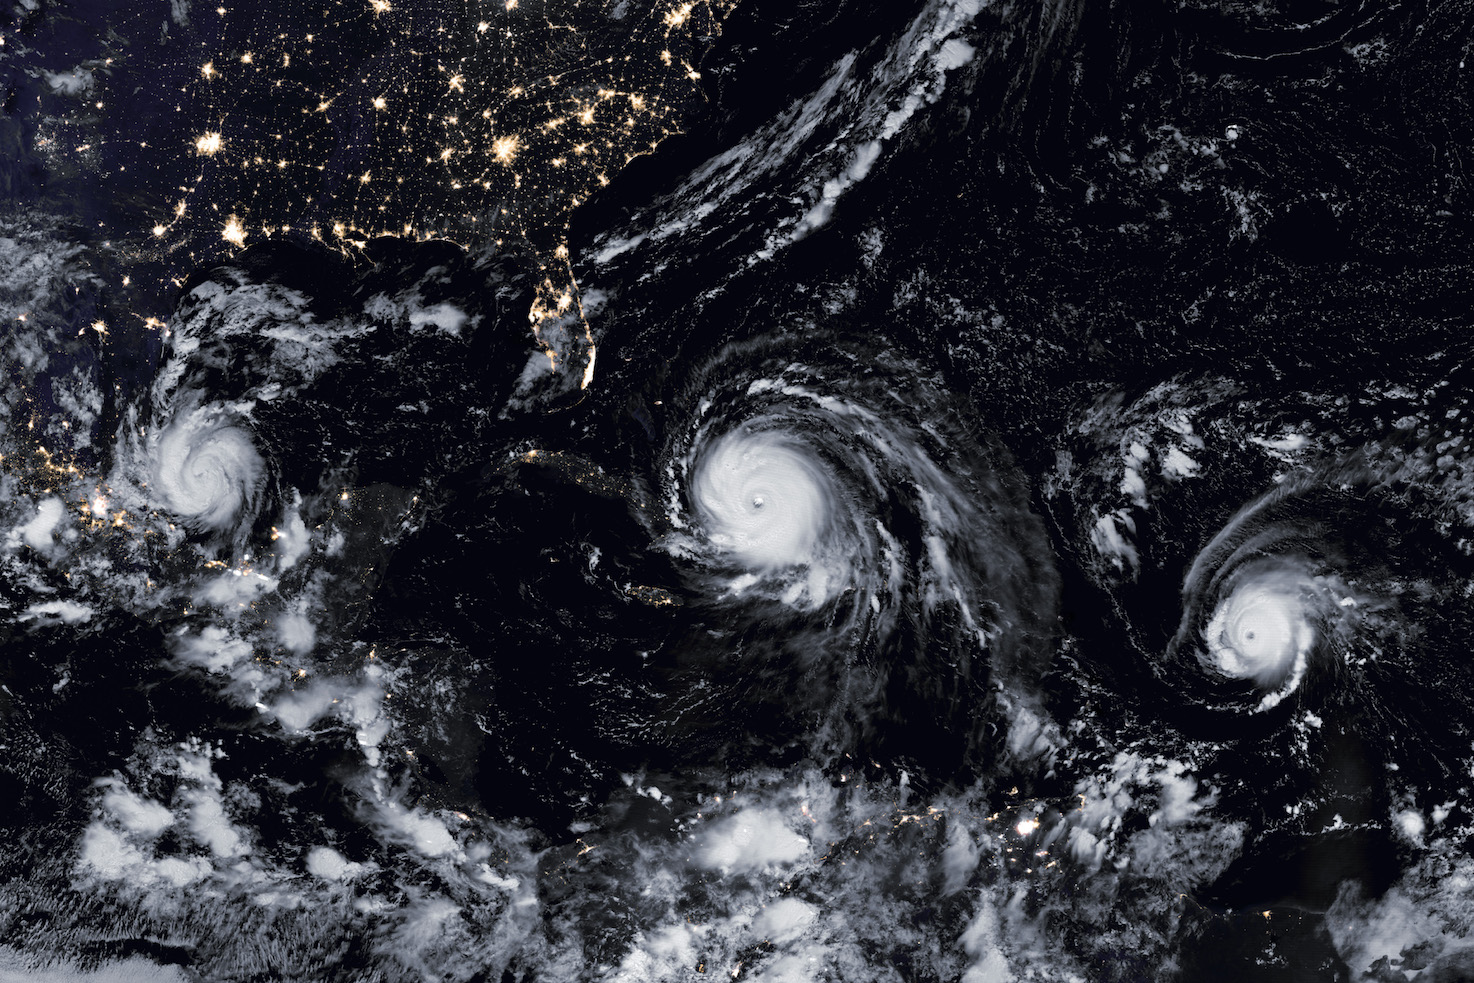 Today's Image of the Day features a look at Hurricanes Katia, Irma, and Jose striking the Atlantic Basin at the same time.